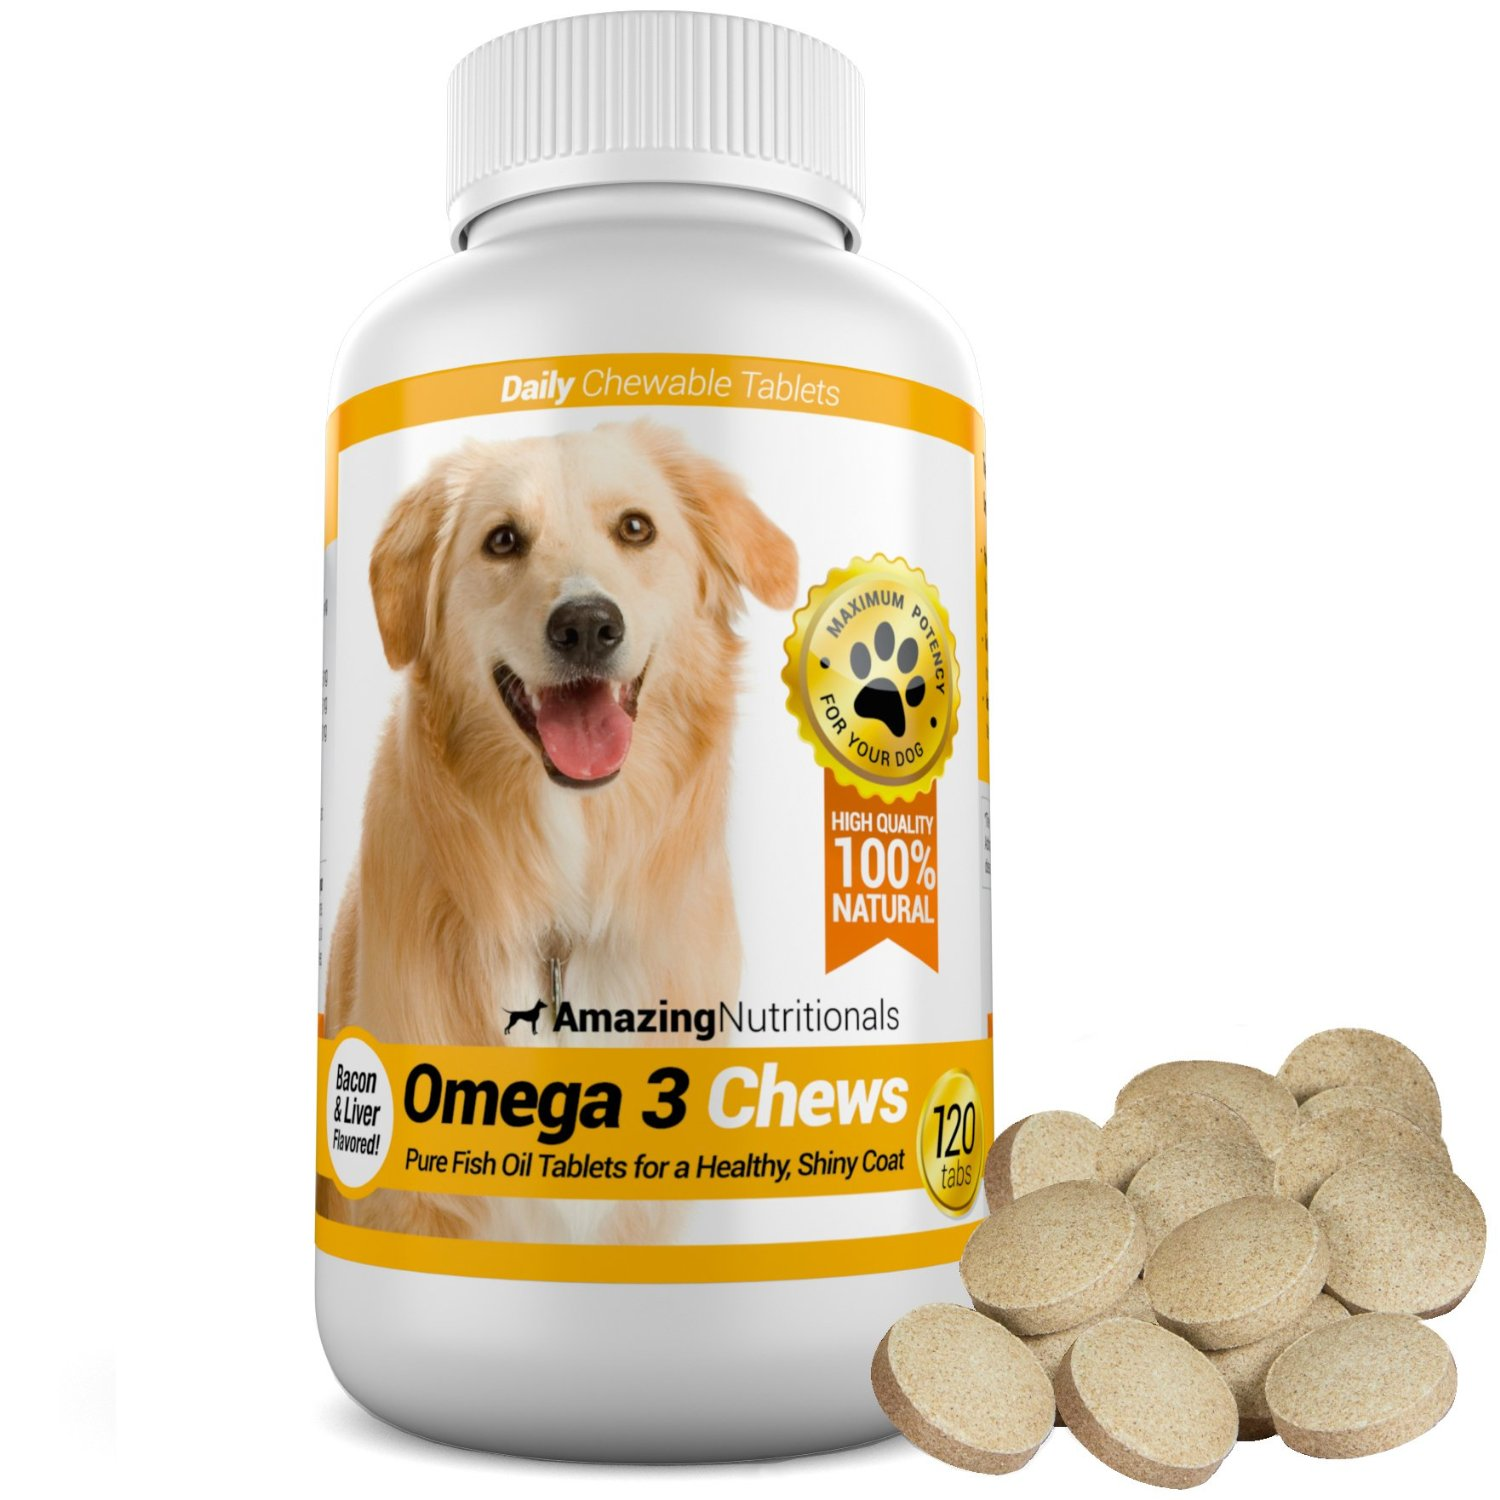 Best fish oil for dogs review pronutrics for Fish oil capsules for dogs